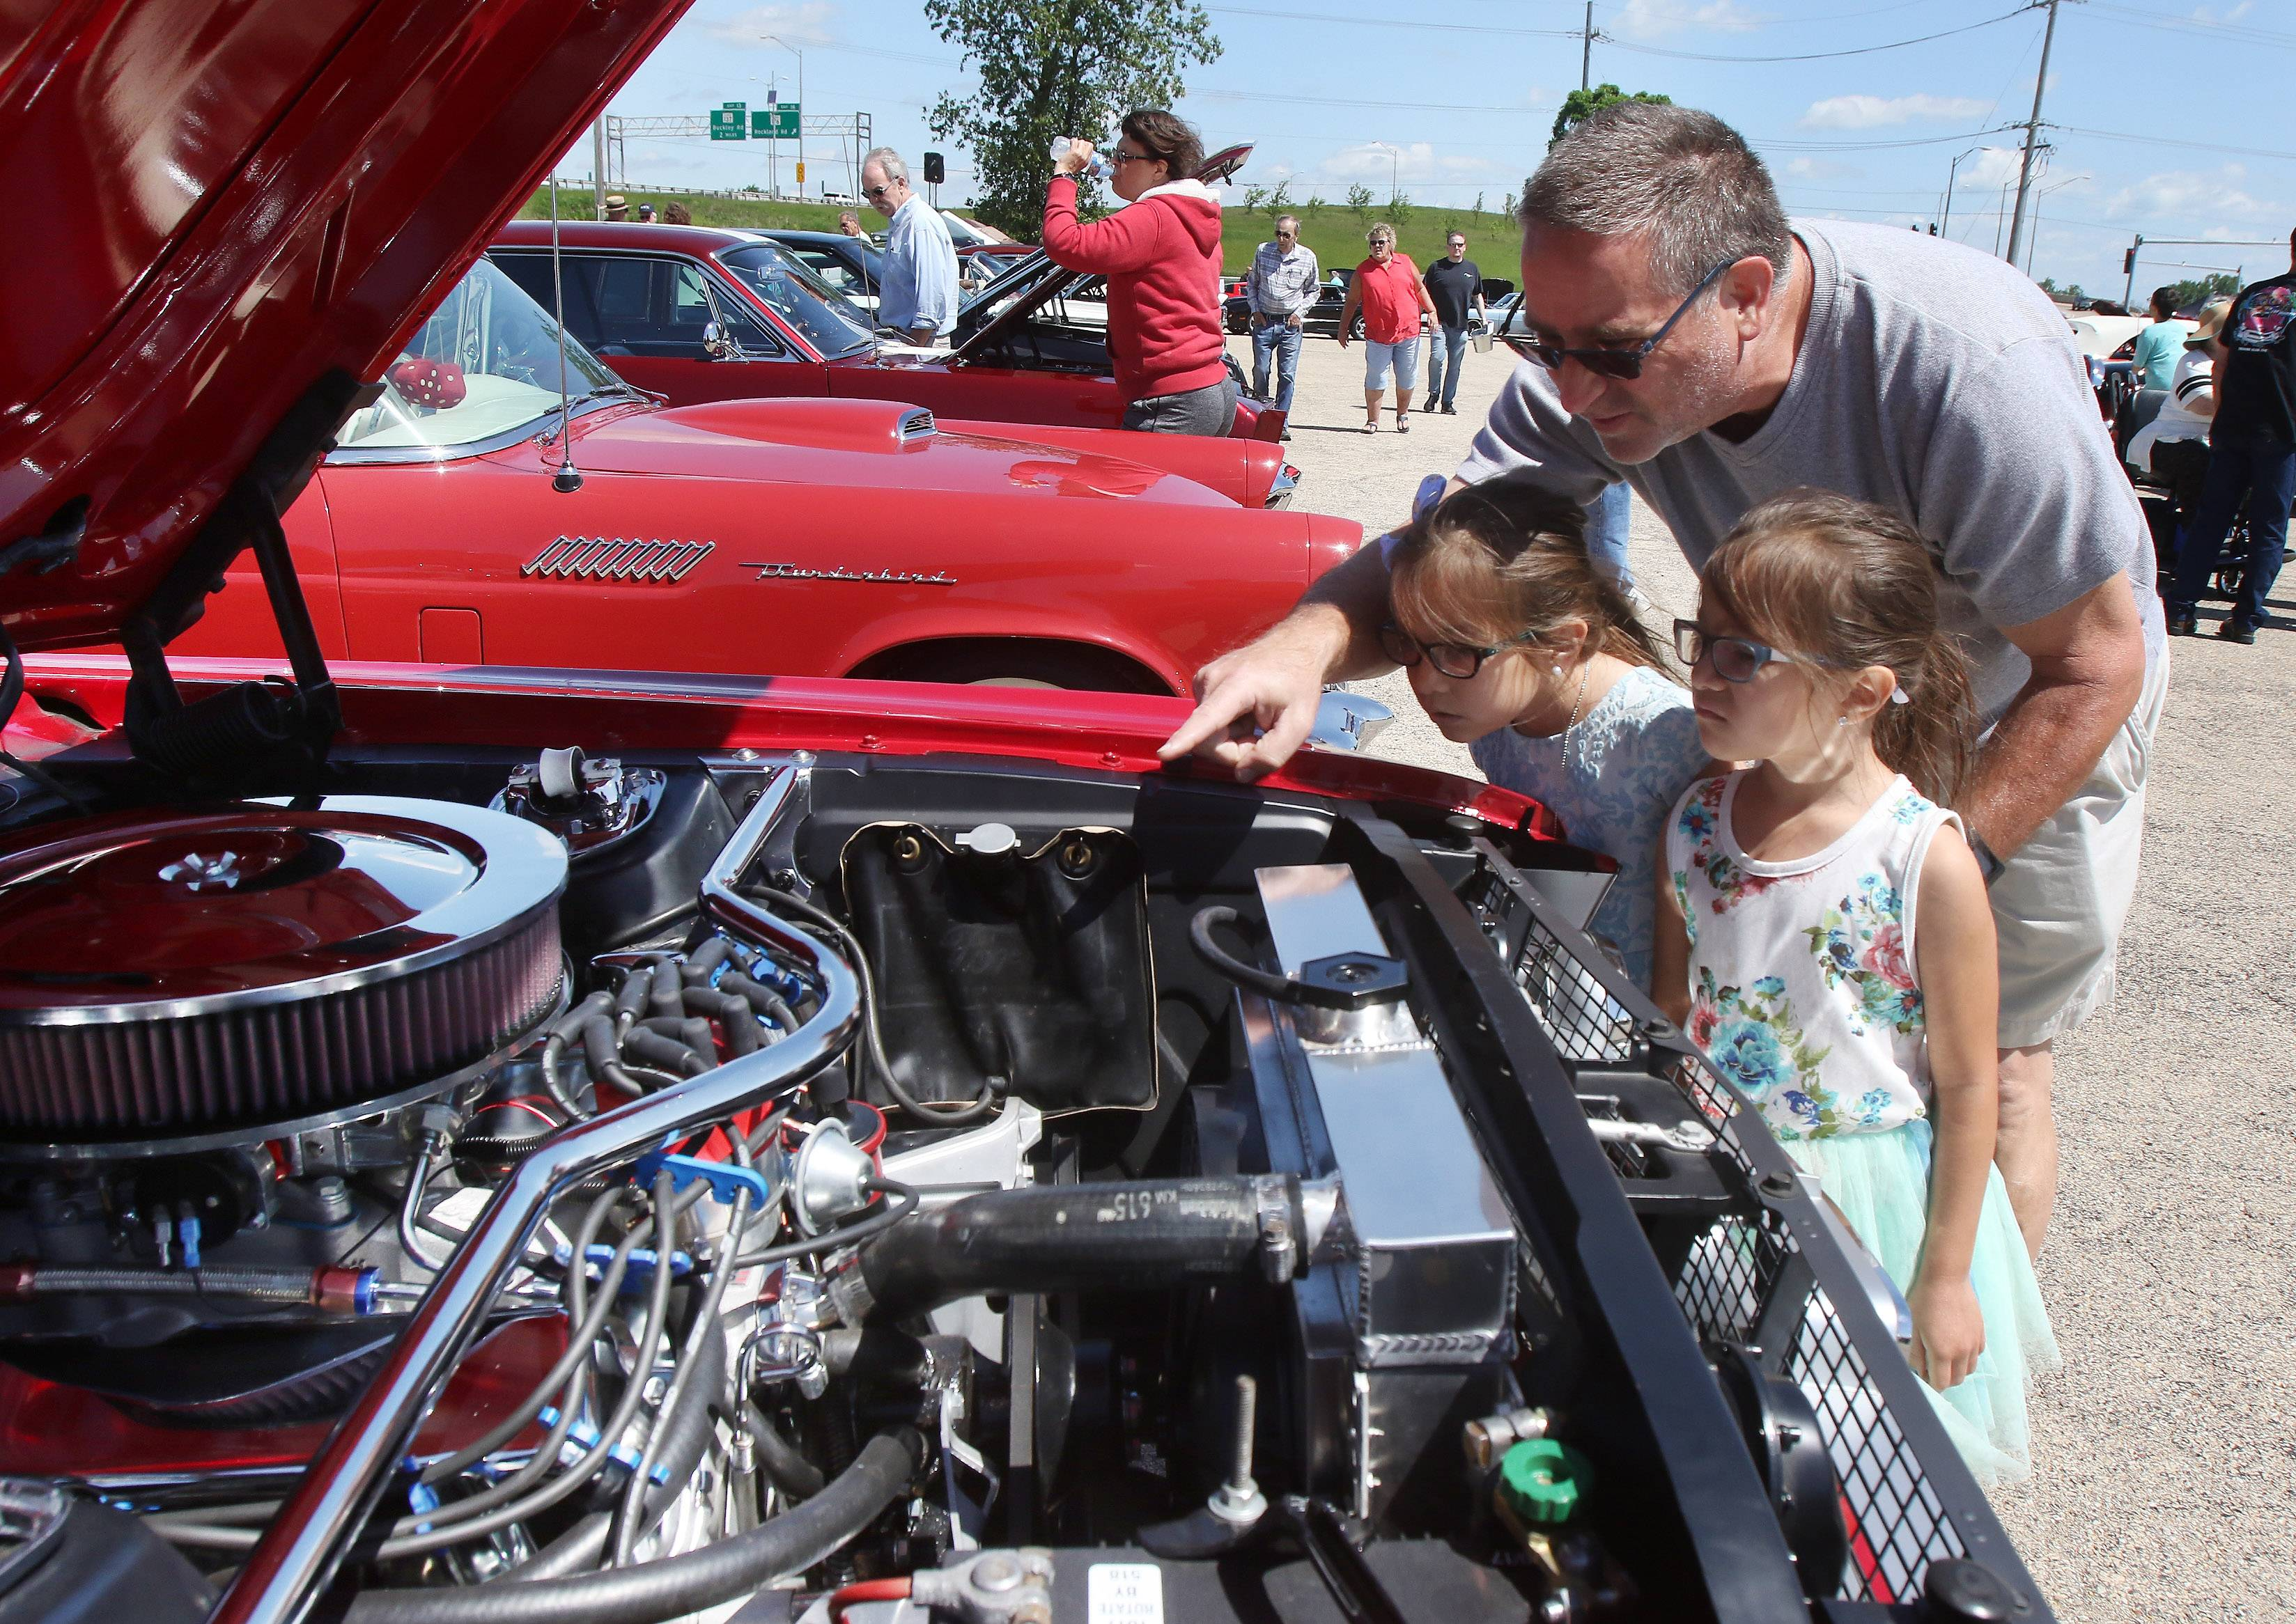 Ken Abbott, of Green Oaks shows his 6-year-old twin daughters, Gracie and Glory, the engine of a 1967 Ford Mustang during the 6th annual Lambs Farm Champion Car Show on Sunday in Libertyville.